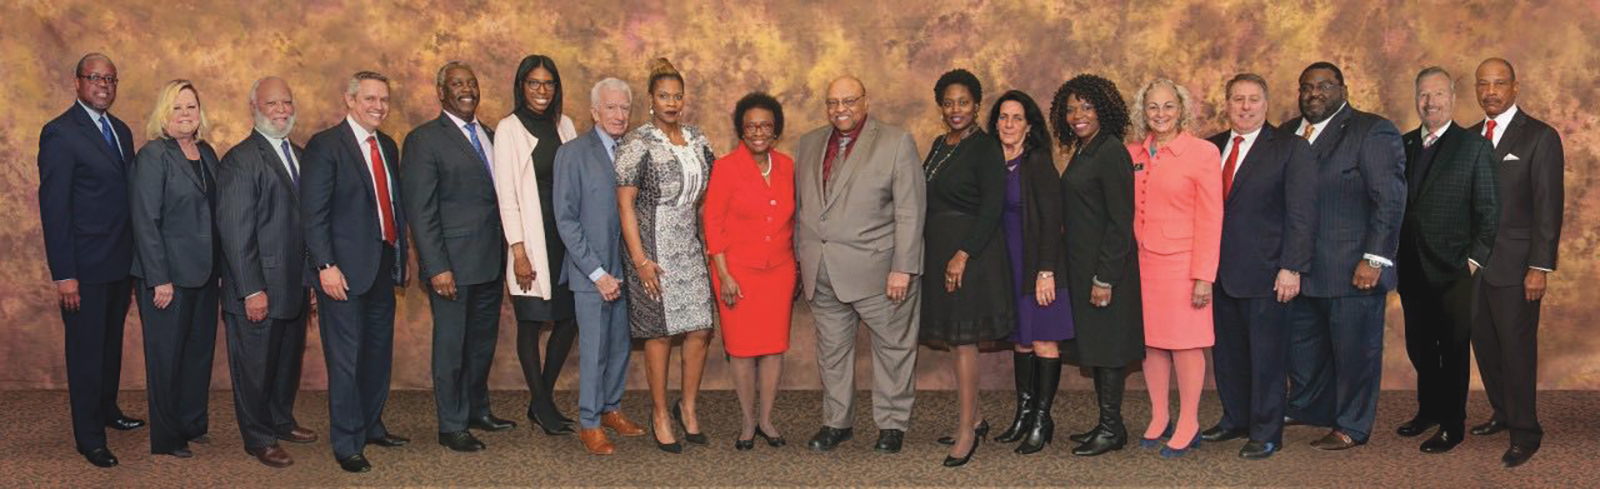 "Pictured from left: Jéan Wilson; Leticia Marquez; Emerson Thompson; John Crossman; Jerry Demings; A. Noni Holmes-Kidd; William ""Bud"" Kirk; Lindsay Greene; Arthenia Joyner; LeRoy Pernell; Faye Allen; Christina Redman; Roberta Walton; Ava Doppelt; Gary Salzman; Christopher Monts; Buddy Dyer; and Donald Henderson. Not Pictured: John Davis."